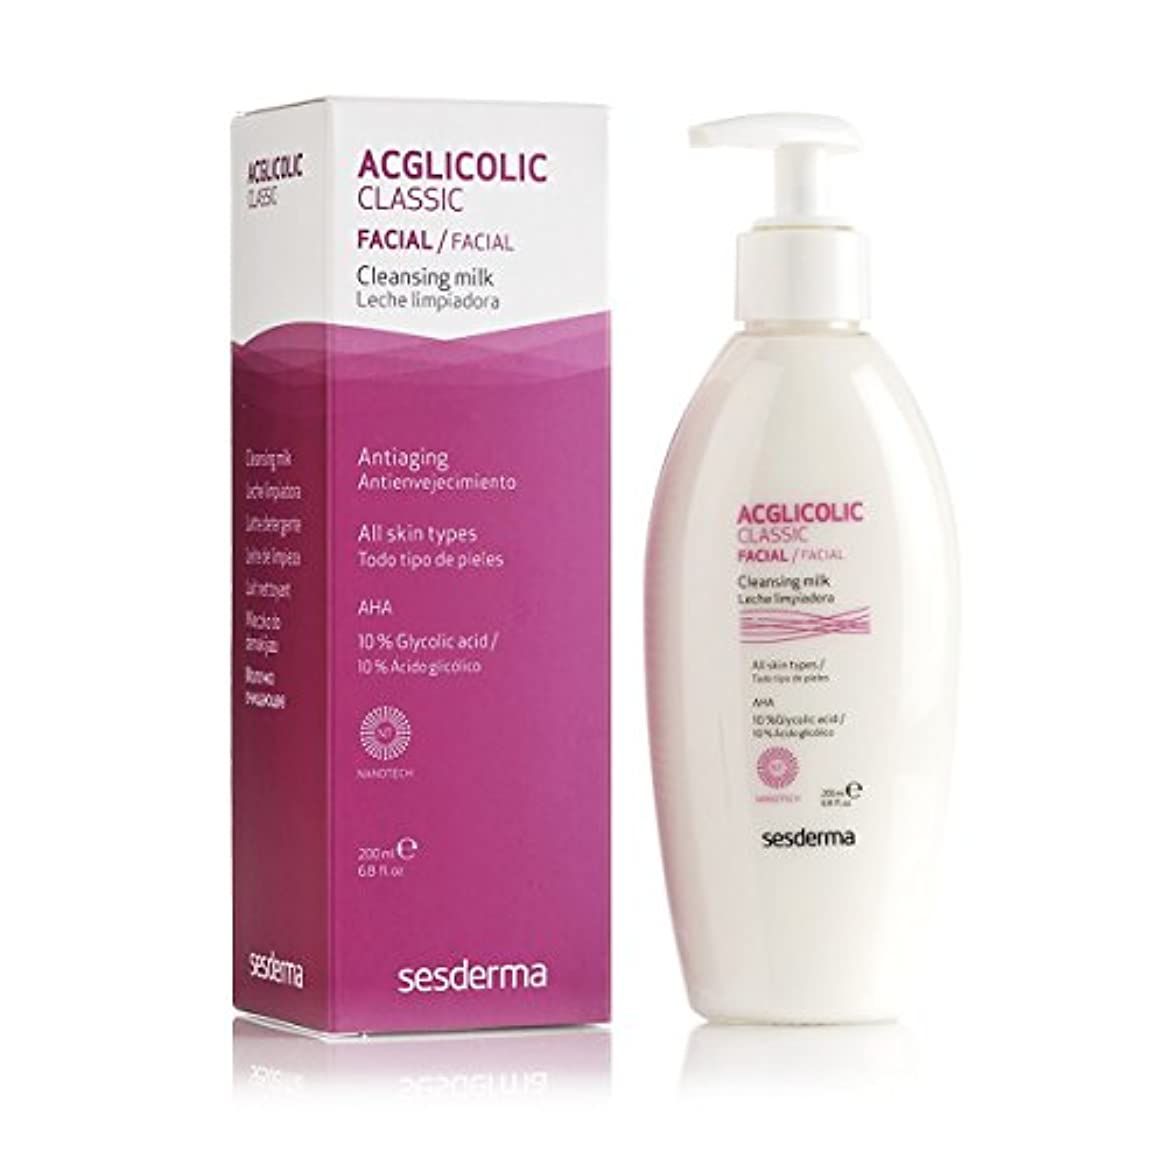 Sesderma Acglicolic Classic Cleansing Milk 200ml [並行輸入品]